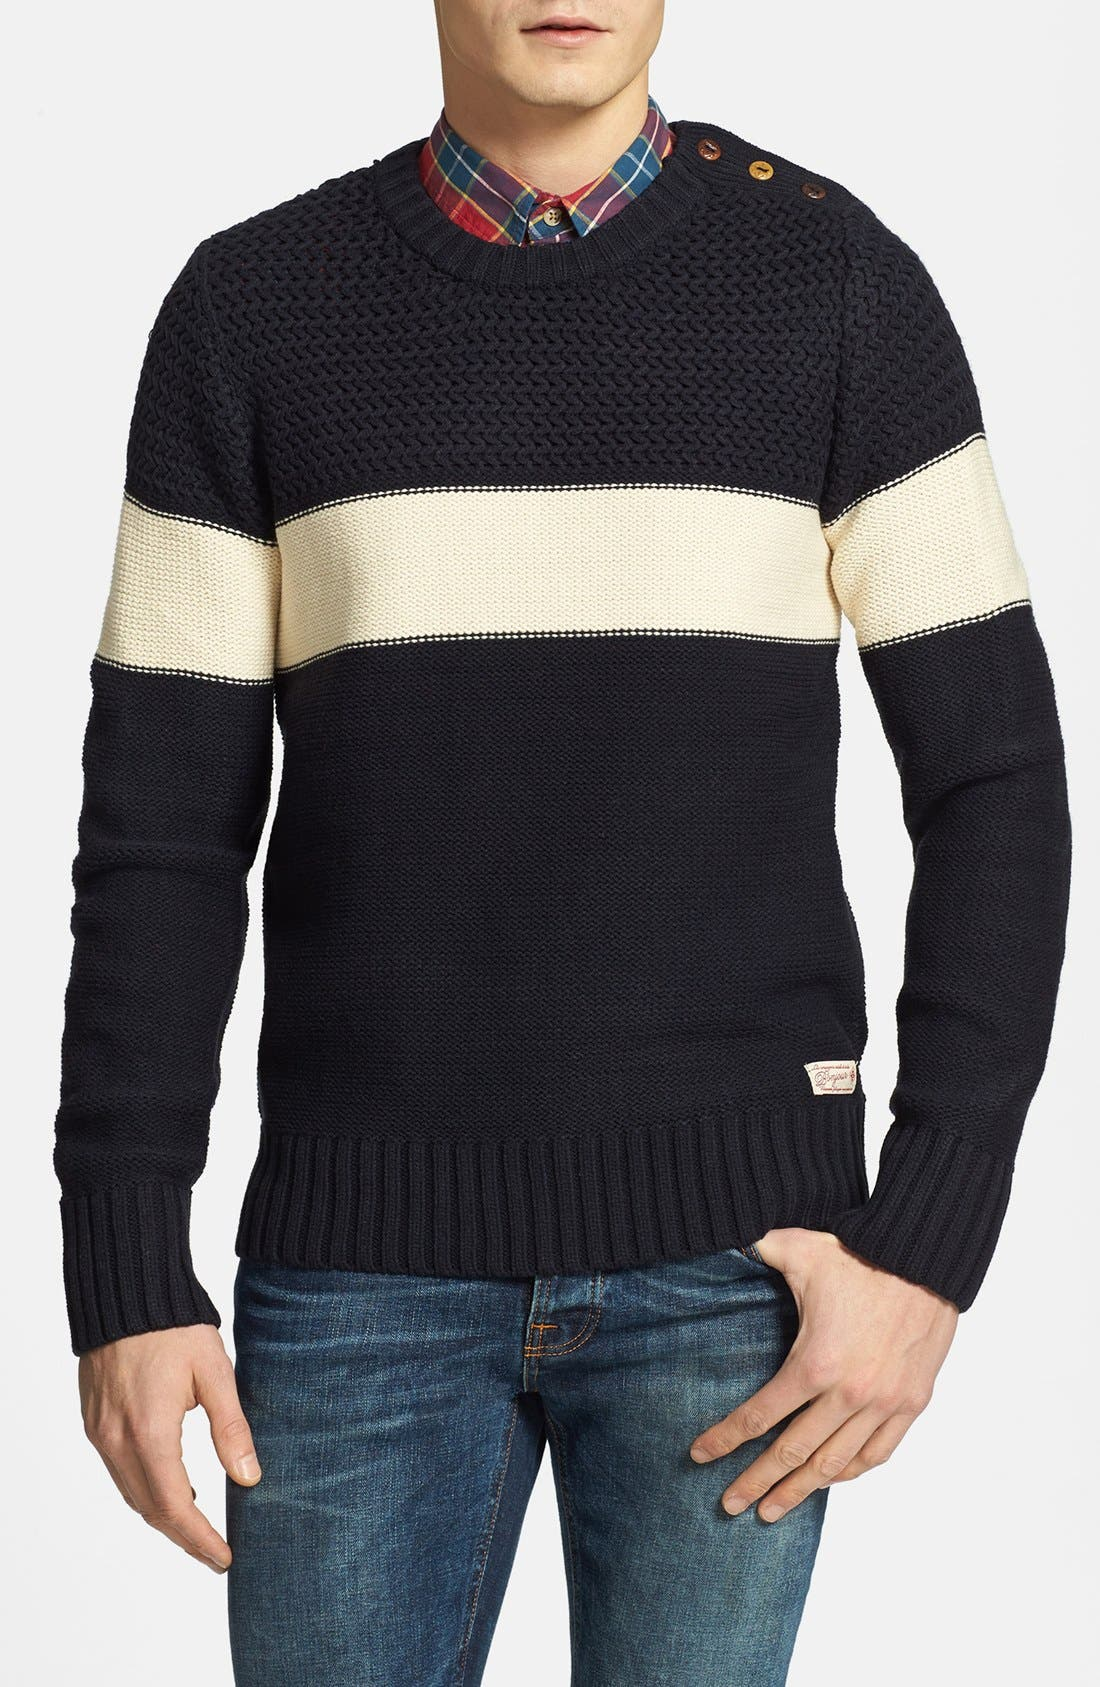 Alternate Image 1 Selected - Scotch & Soda Cable Knit Stripe Crewneck Sweater